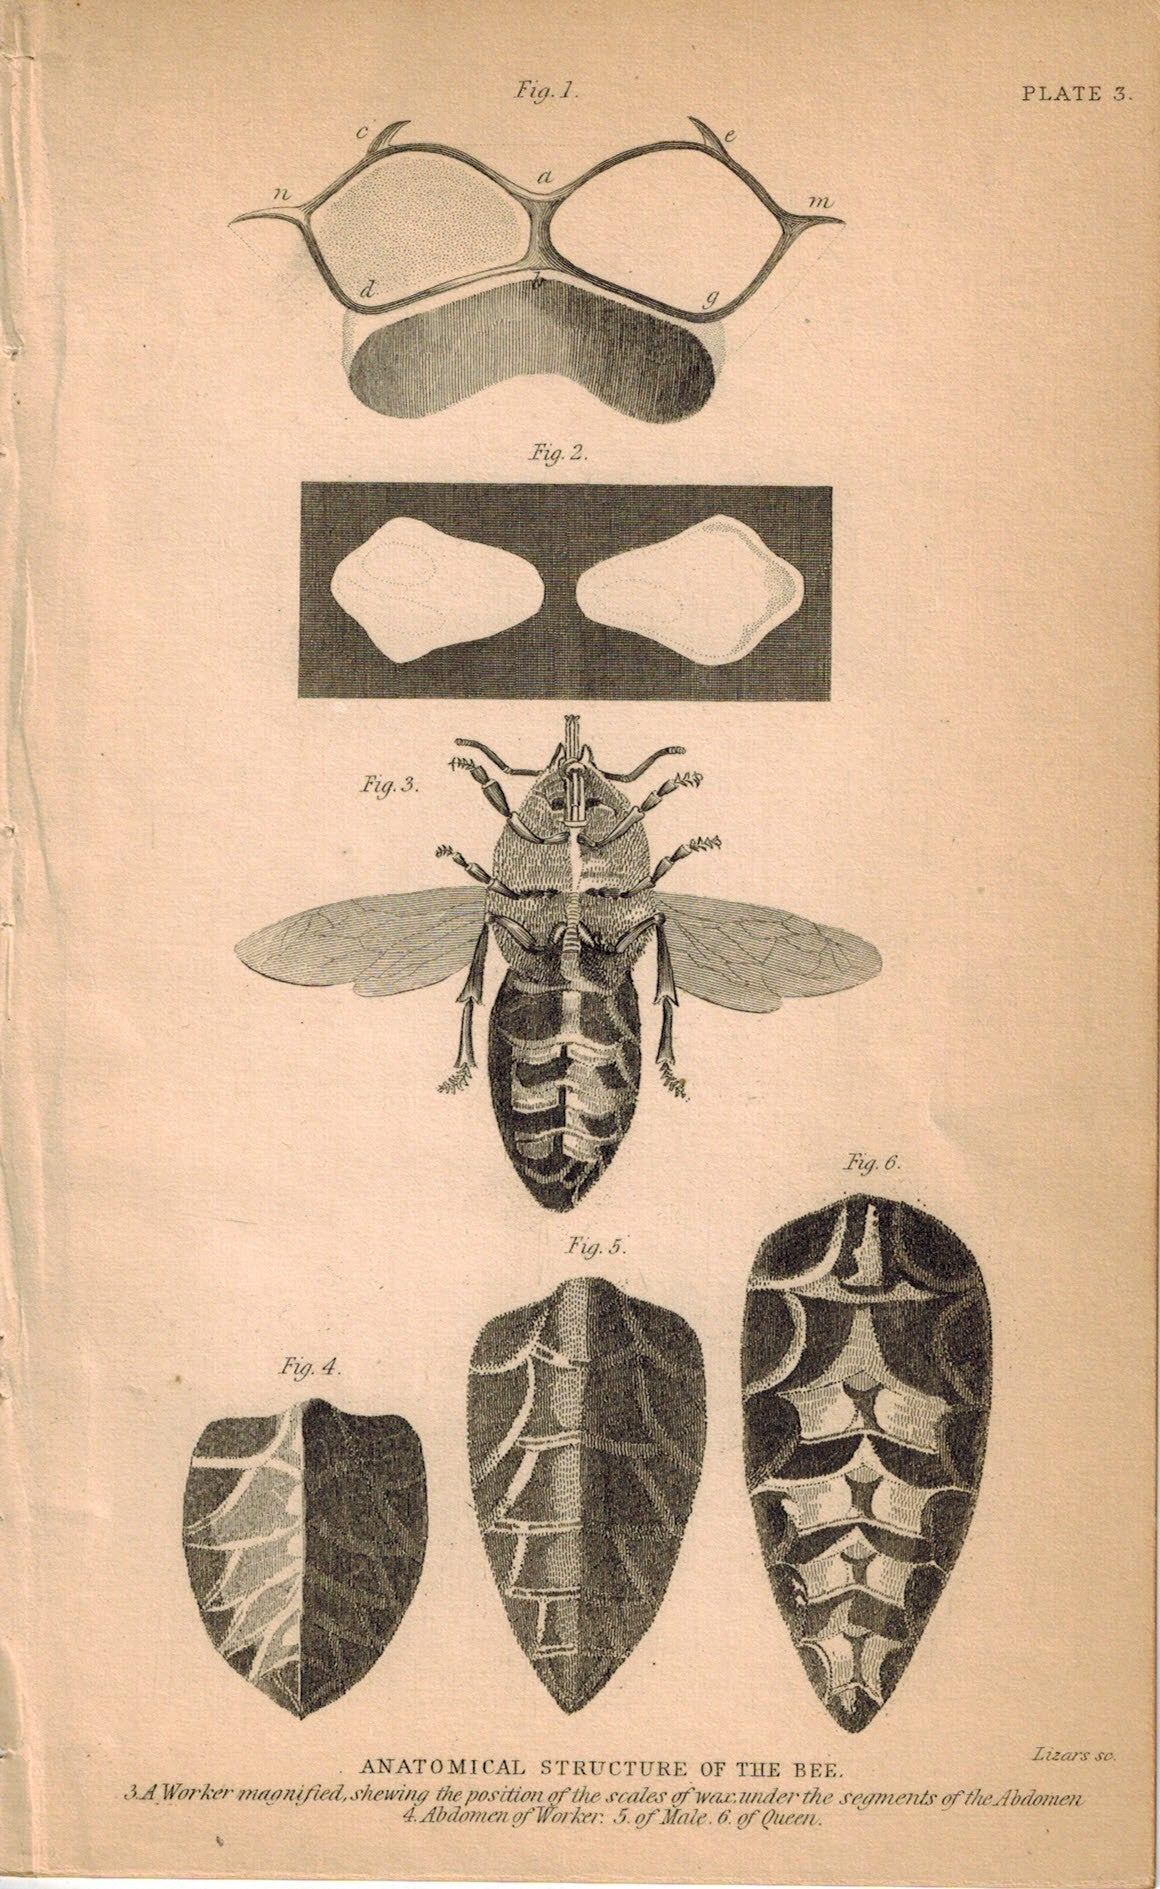 Anatomical Structure Of The Bee 1840 Original Hand Colored Engraving Print